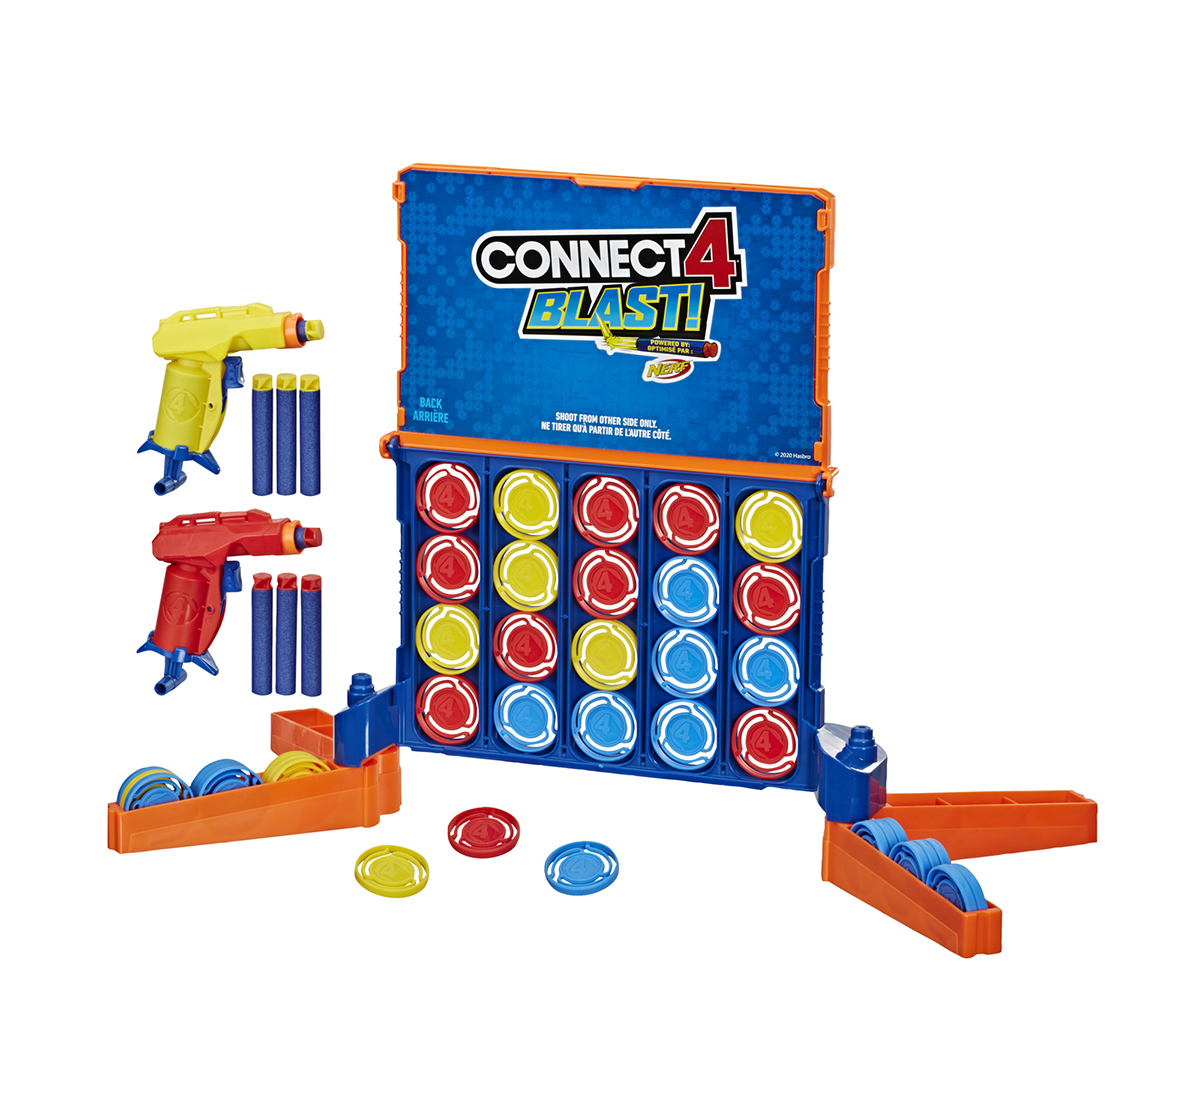 Hasbro Gaming | Hasbro Connect 4 Blast! Game With Nerf Blasters Games for Kids age 8Y+